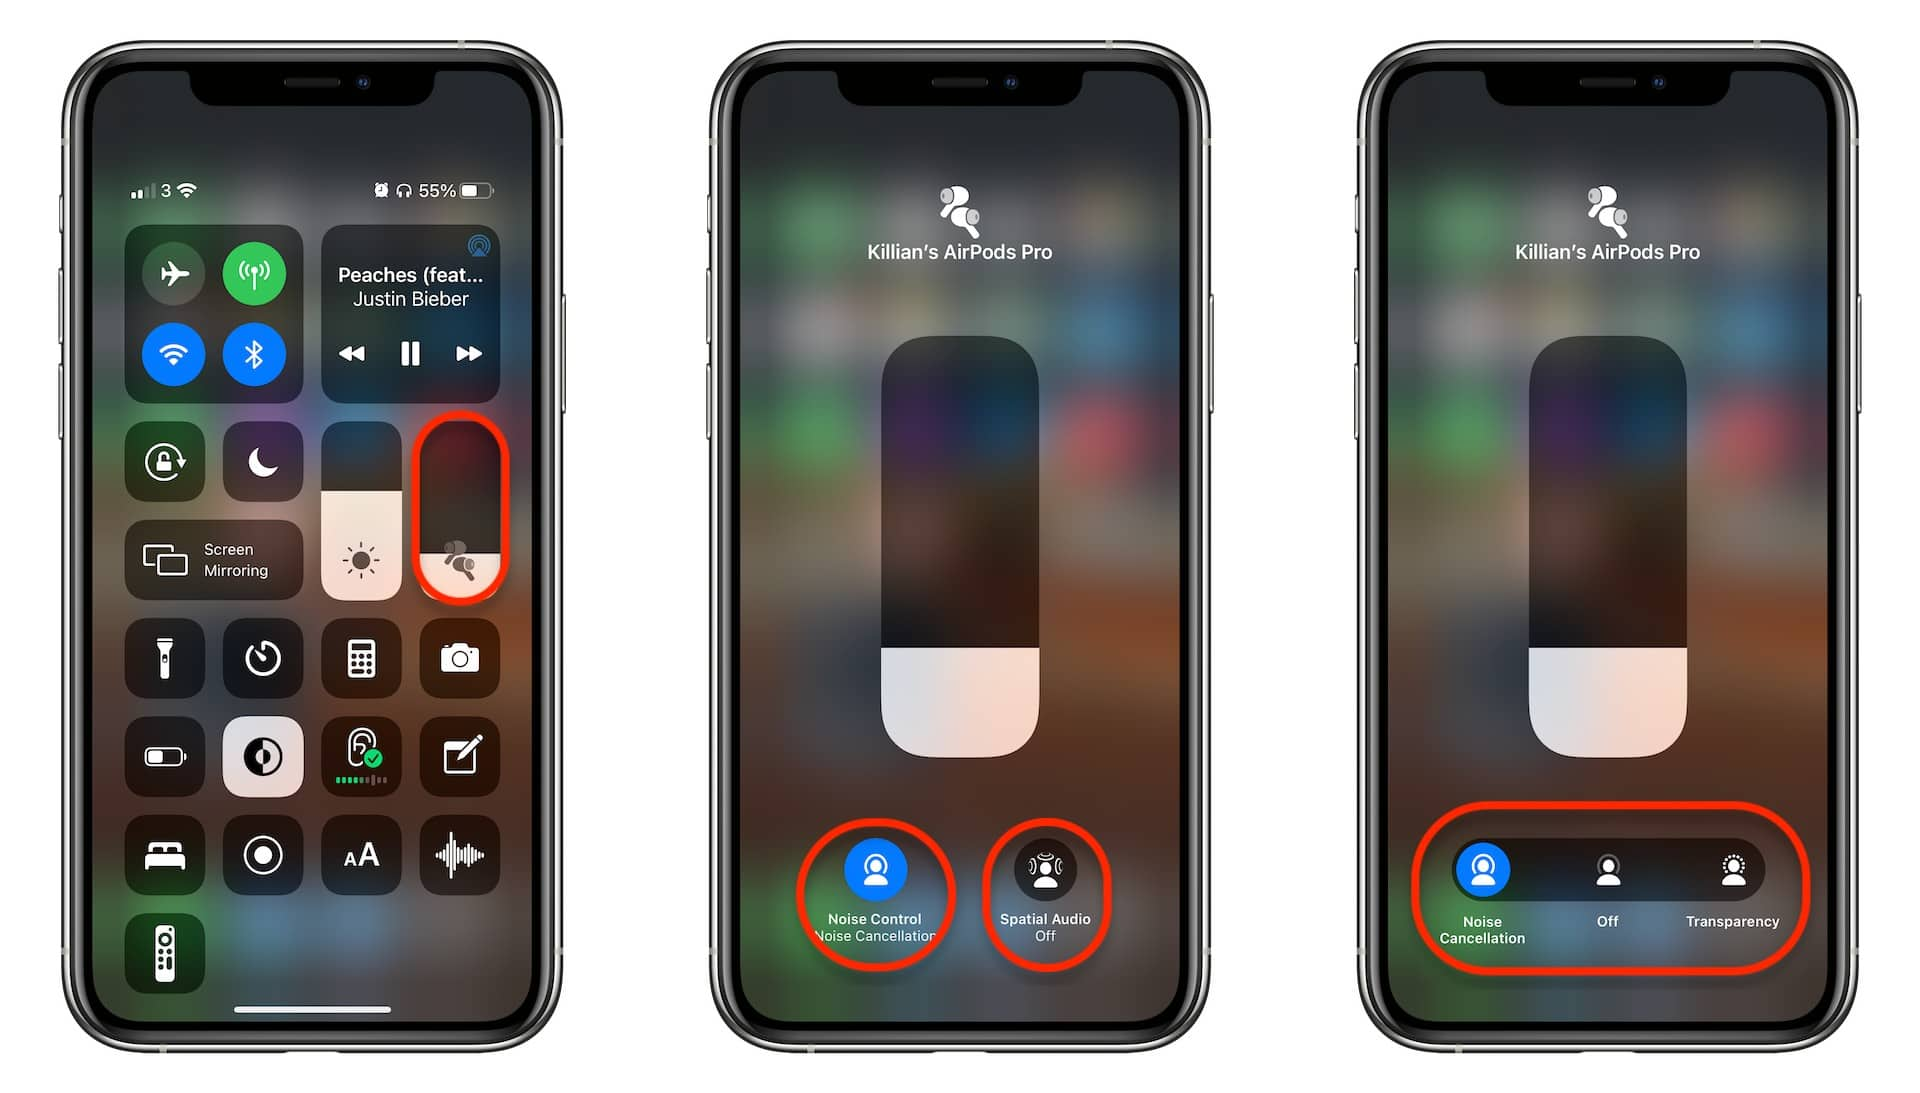 Switch AirPods audio modes in Control Center